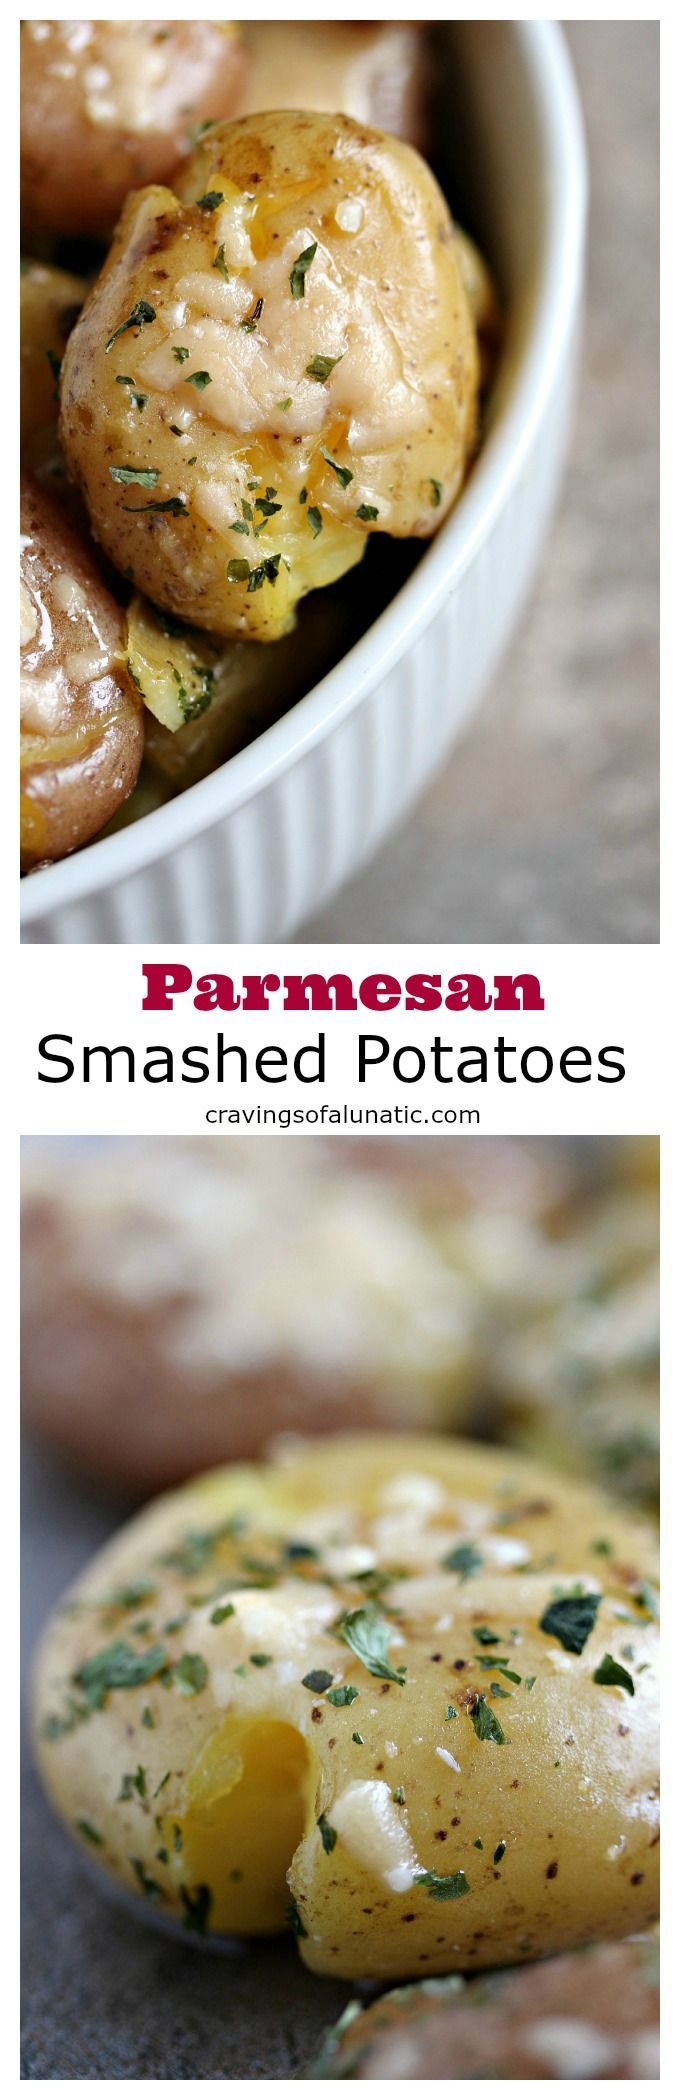 Parmesan Smashed Potatoes from cravingsofalunatic.com- Parmesan smashed potatoes are a family favourite in our household. They're a great alternative to mashed potatoes for the holidays, or all year long. #sidedish #potatoes #parmesan #dinner